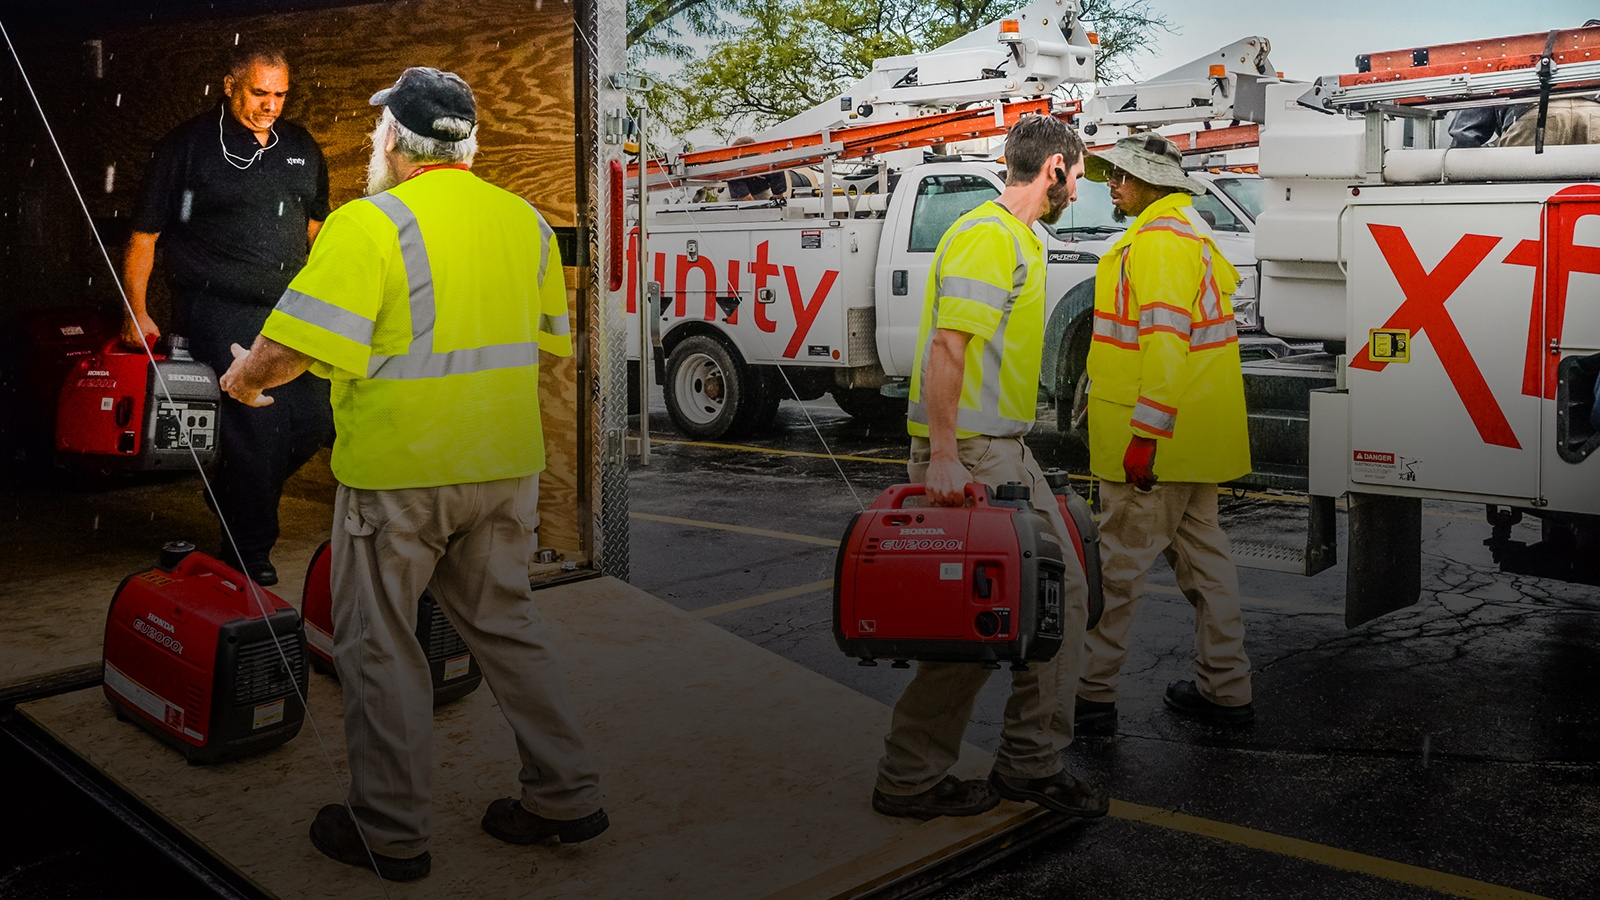 Xfinity technicians load a truck with supplies